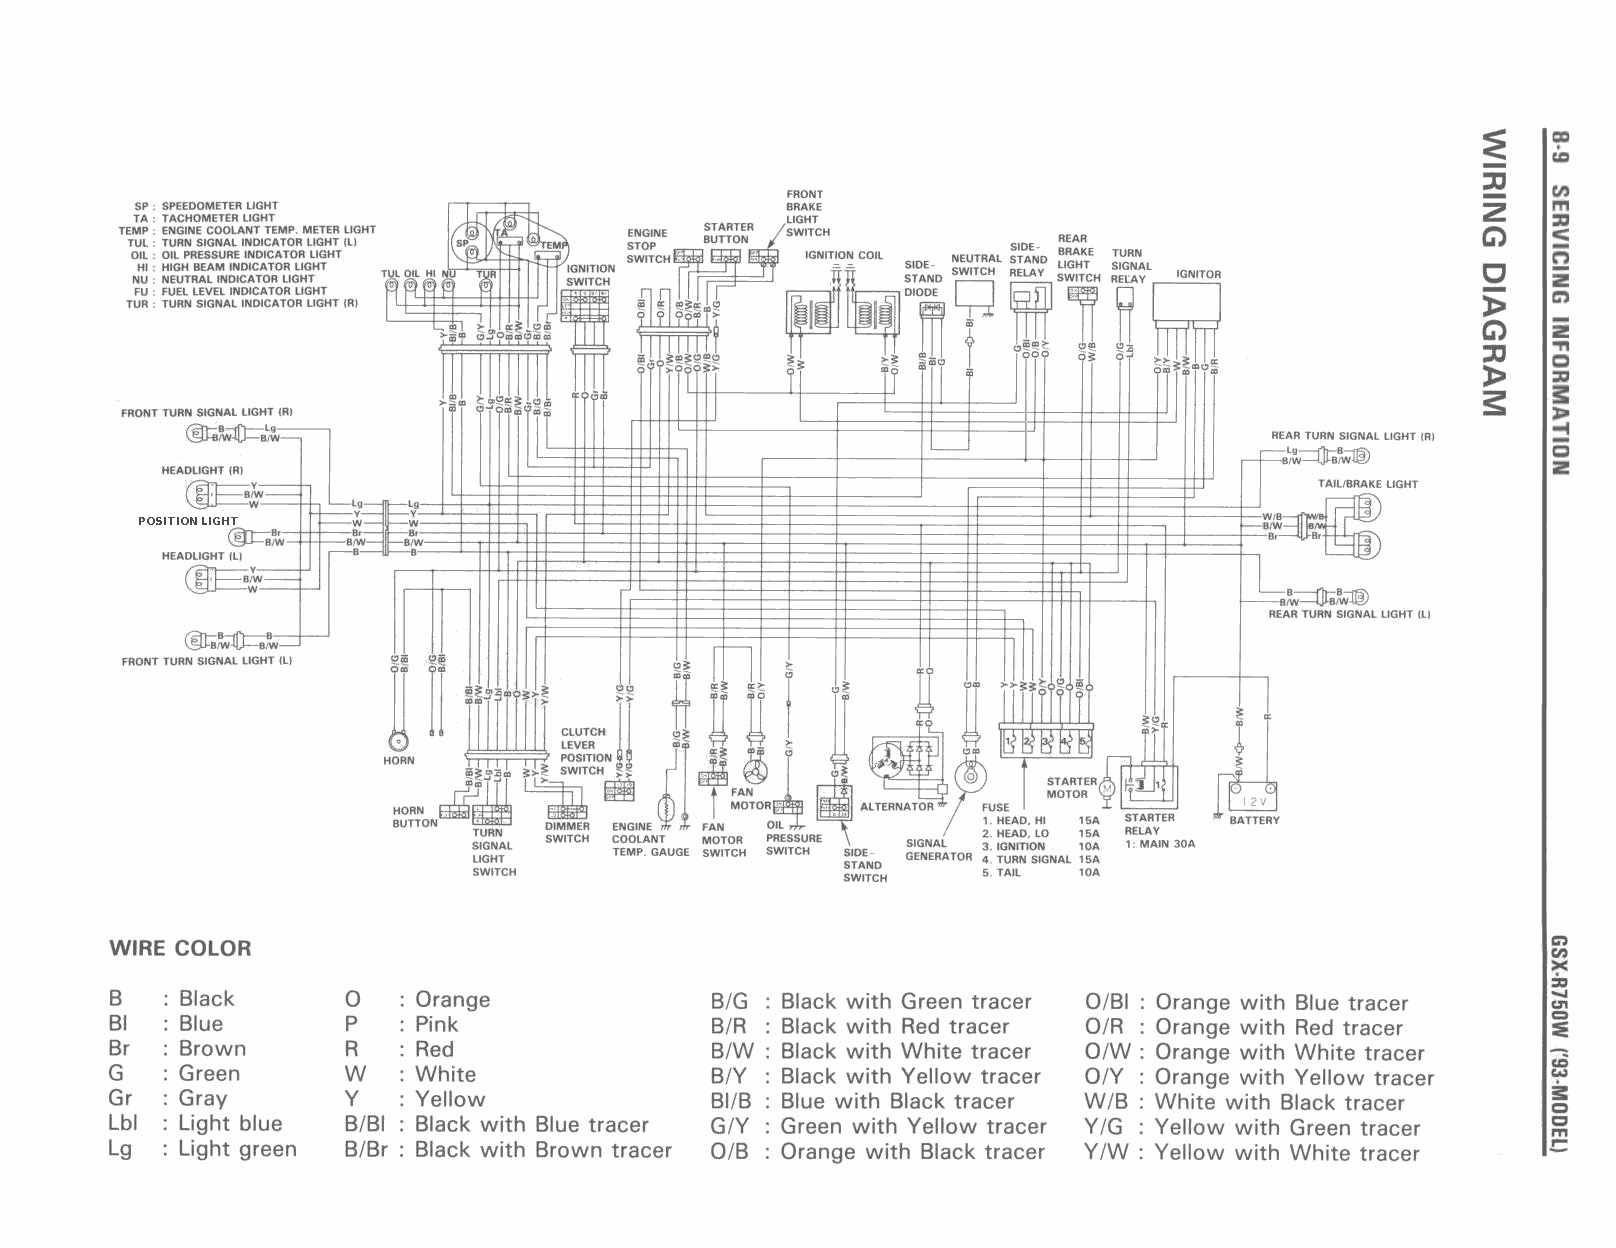 wiring gsx diagram suzuki 1997 r600v suzuki swift 1998